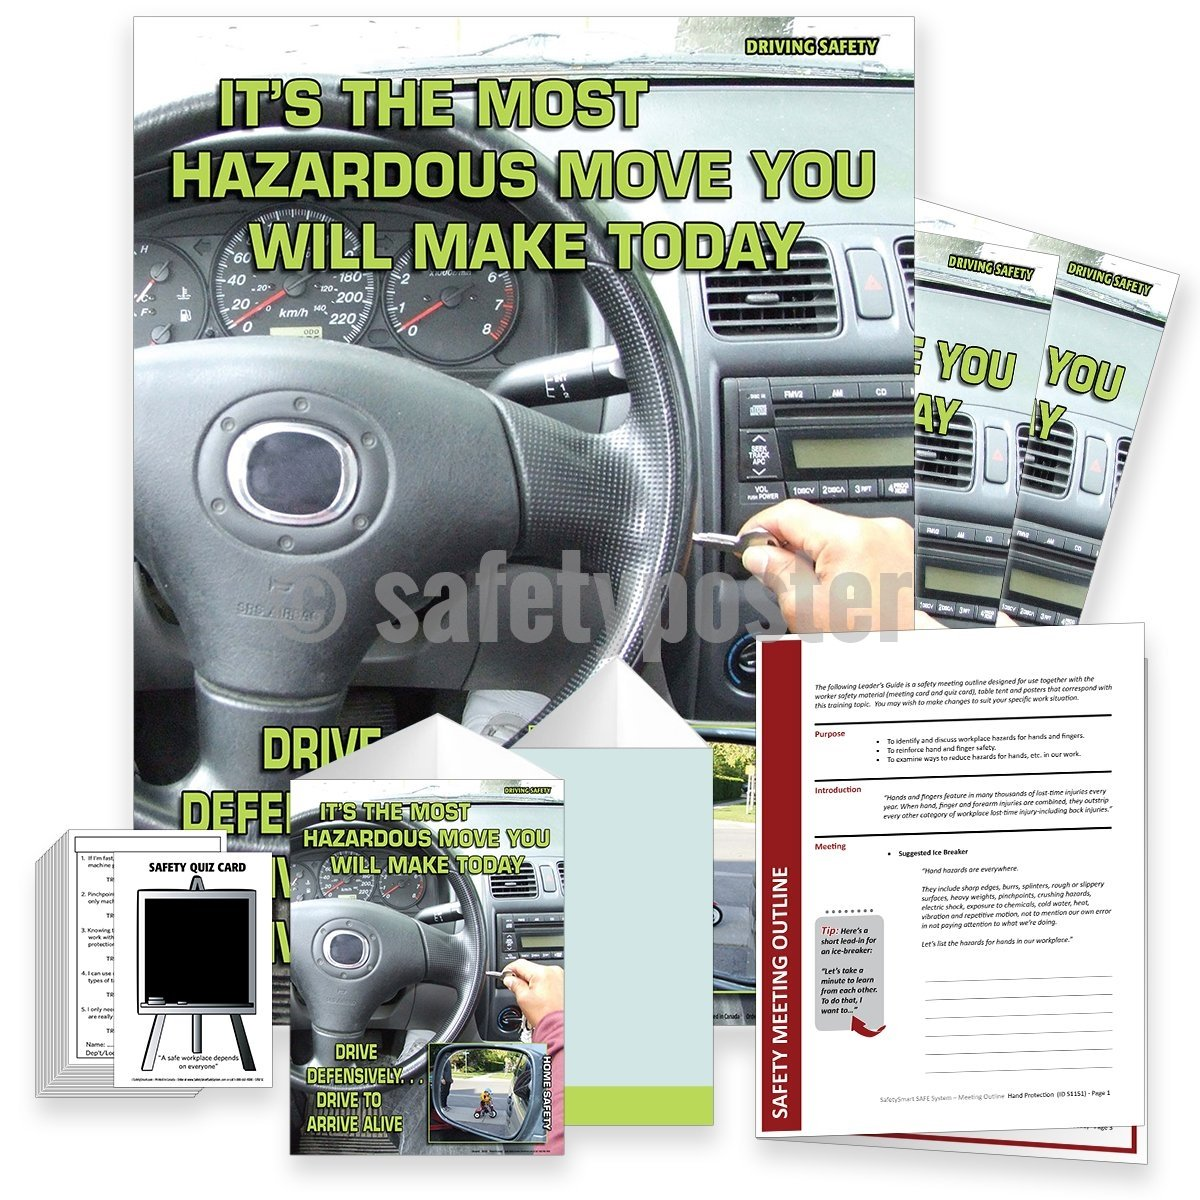 Safety Meeting Kit - Drive Defensively To Arrive Alive